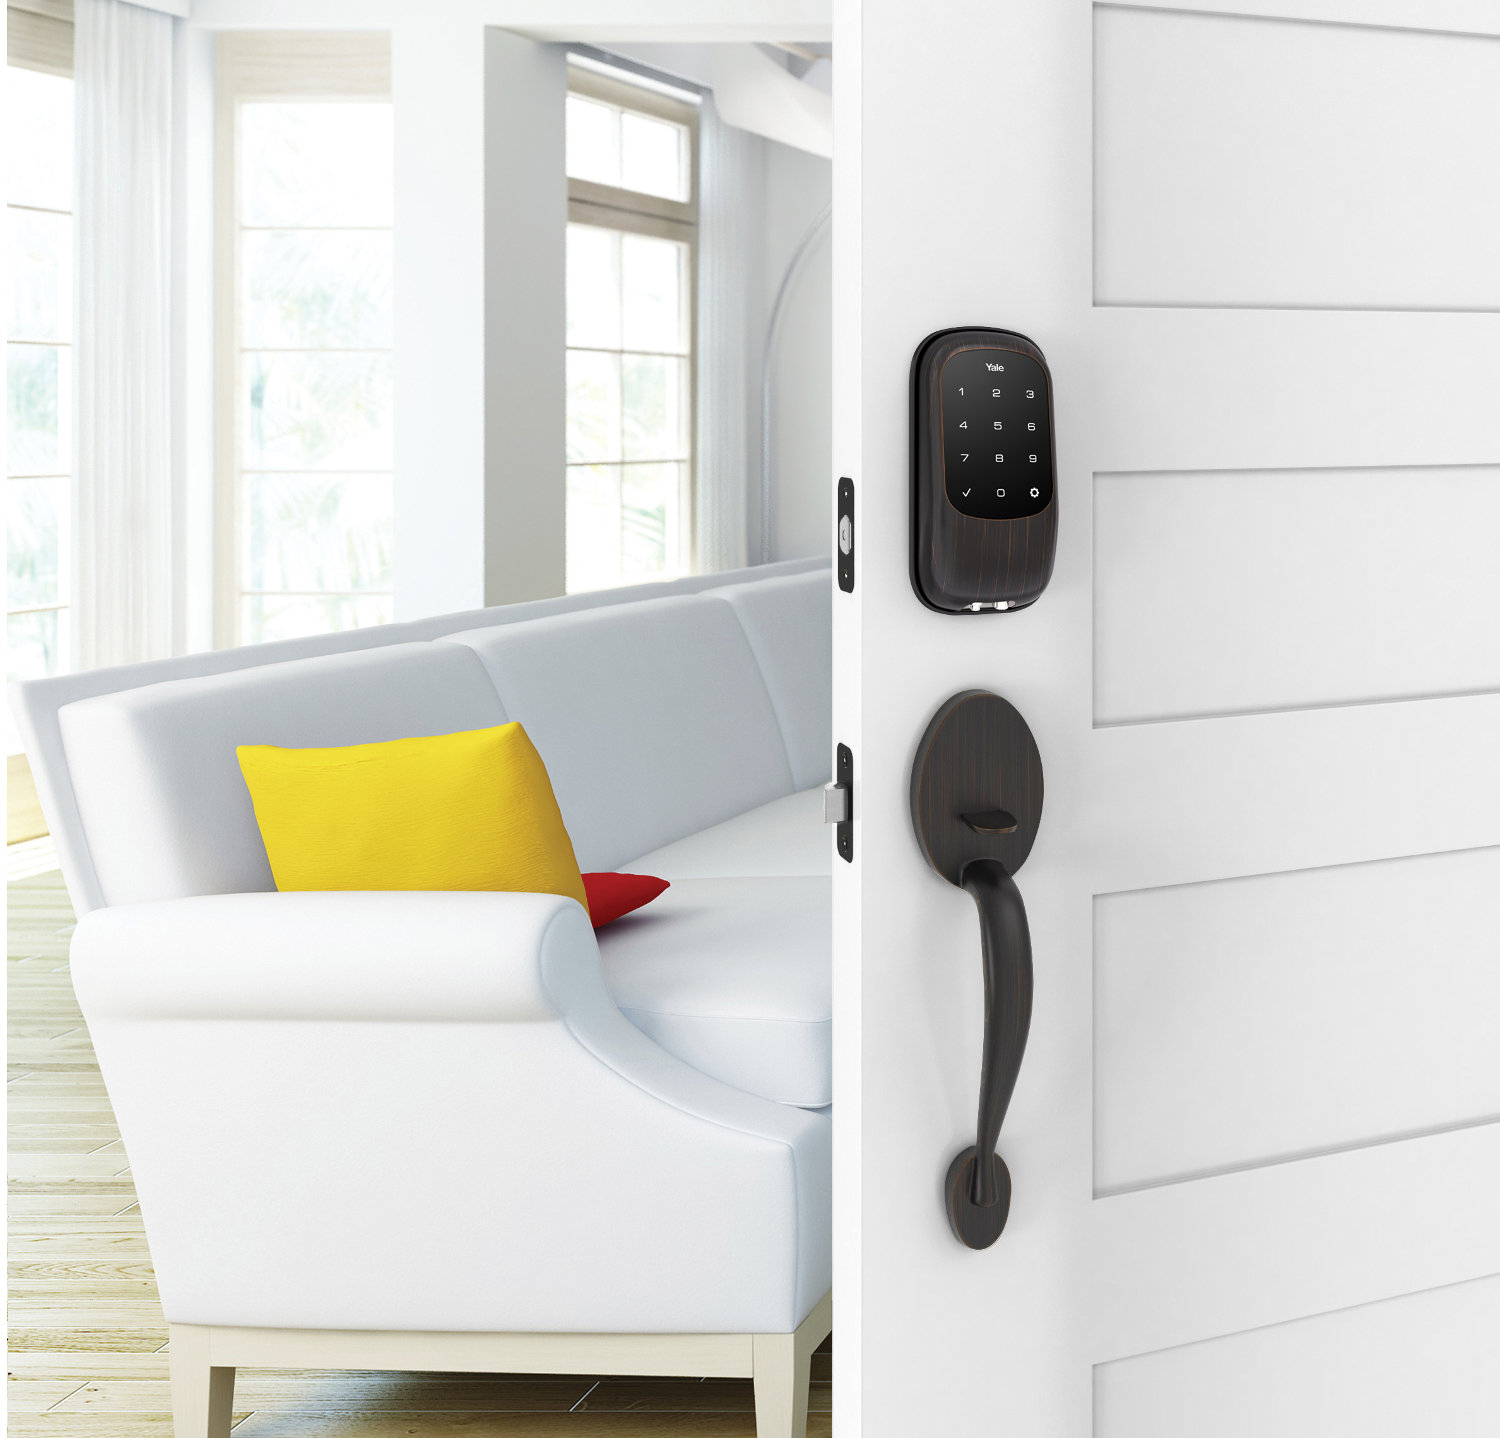 Smart Locks: Which Type is Right for Your Home?